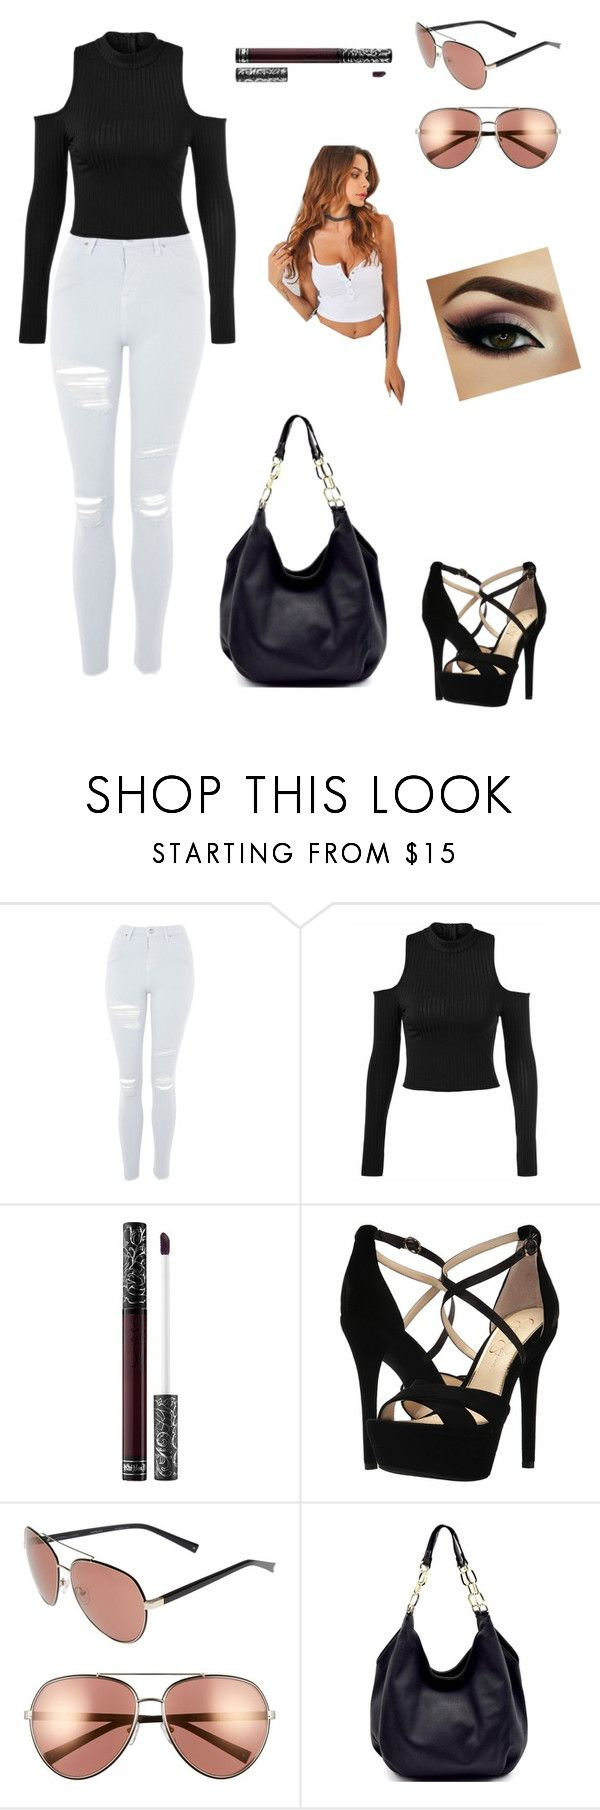 """Sans titre #66"" by thelottie-a ❤ liked on Polyvore featuring Topshop, Kat Von D, Jessica Simpson and Kendall + Kylie"